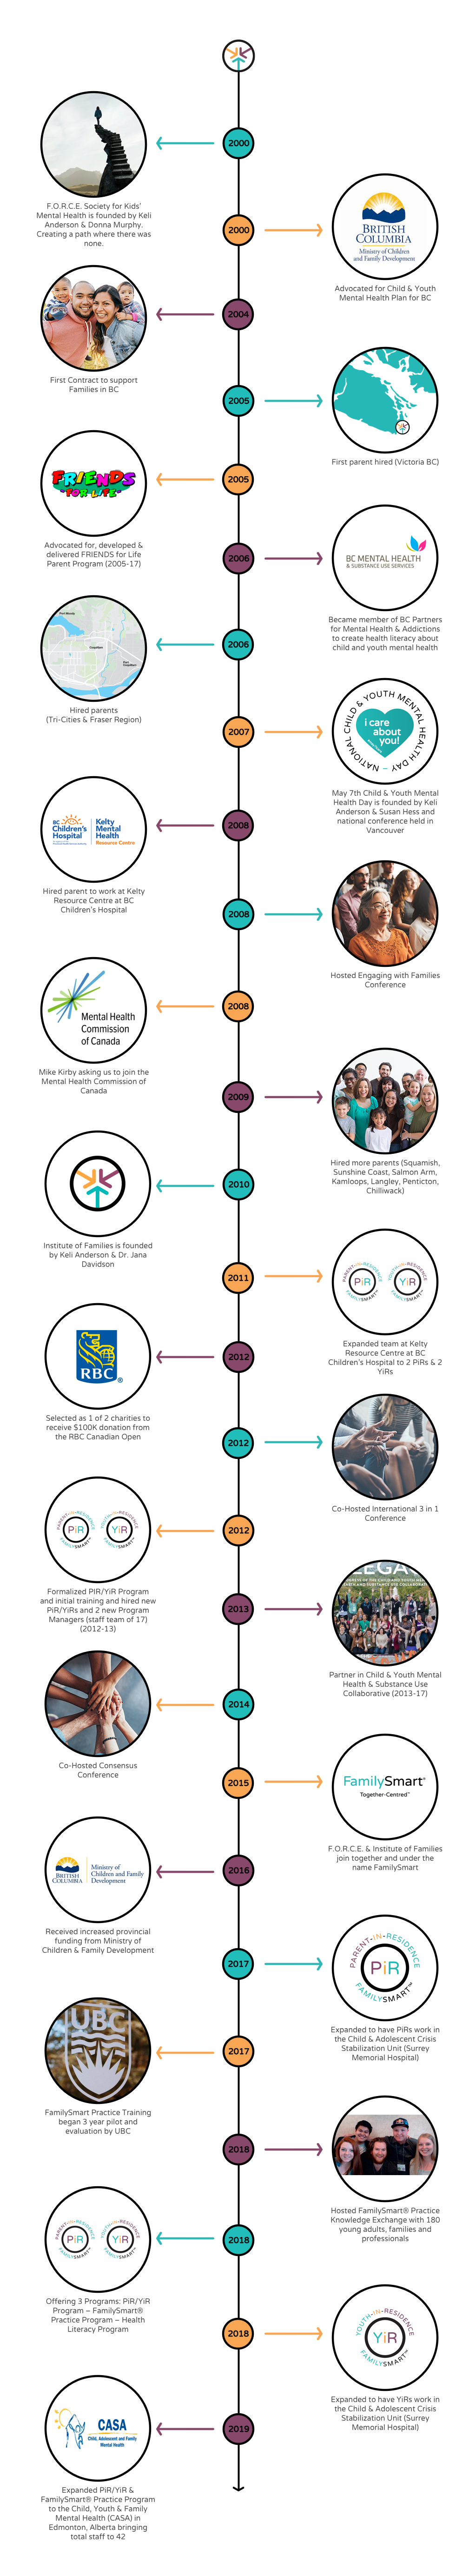 Historic timeline of FamilySmart since its founding in British Columbia in 2000